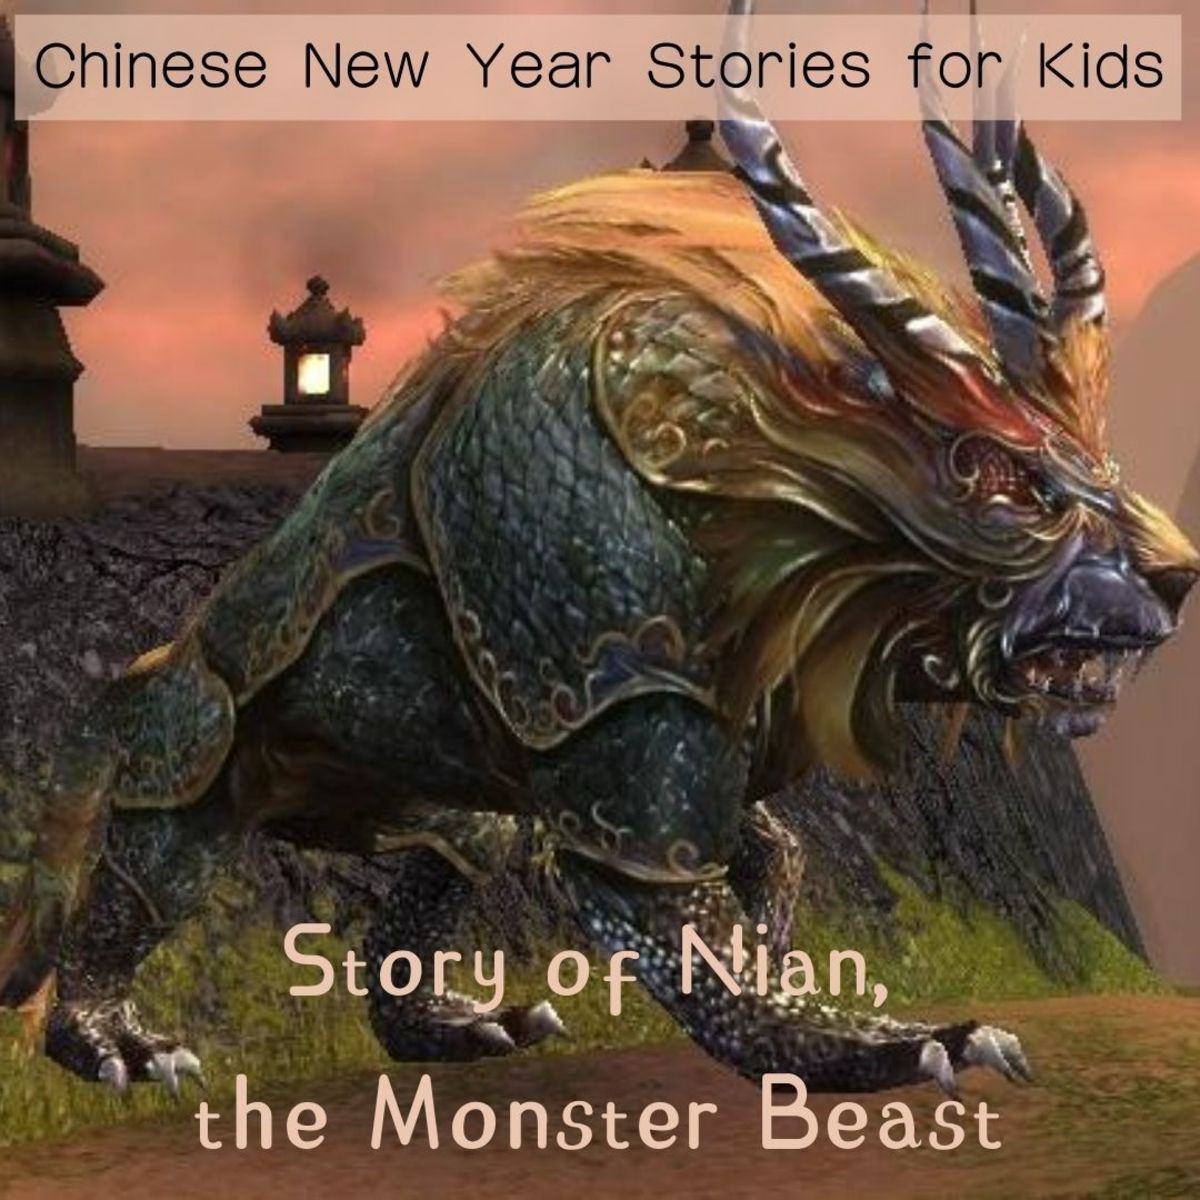 Chinese New Year Legends and Stories for Kids: Story of Nian, the Monster Beast